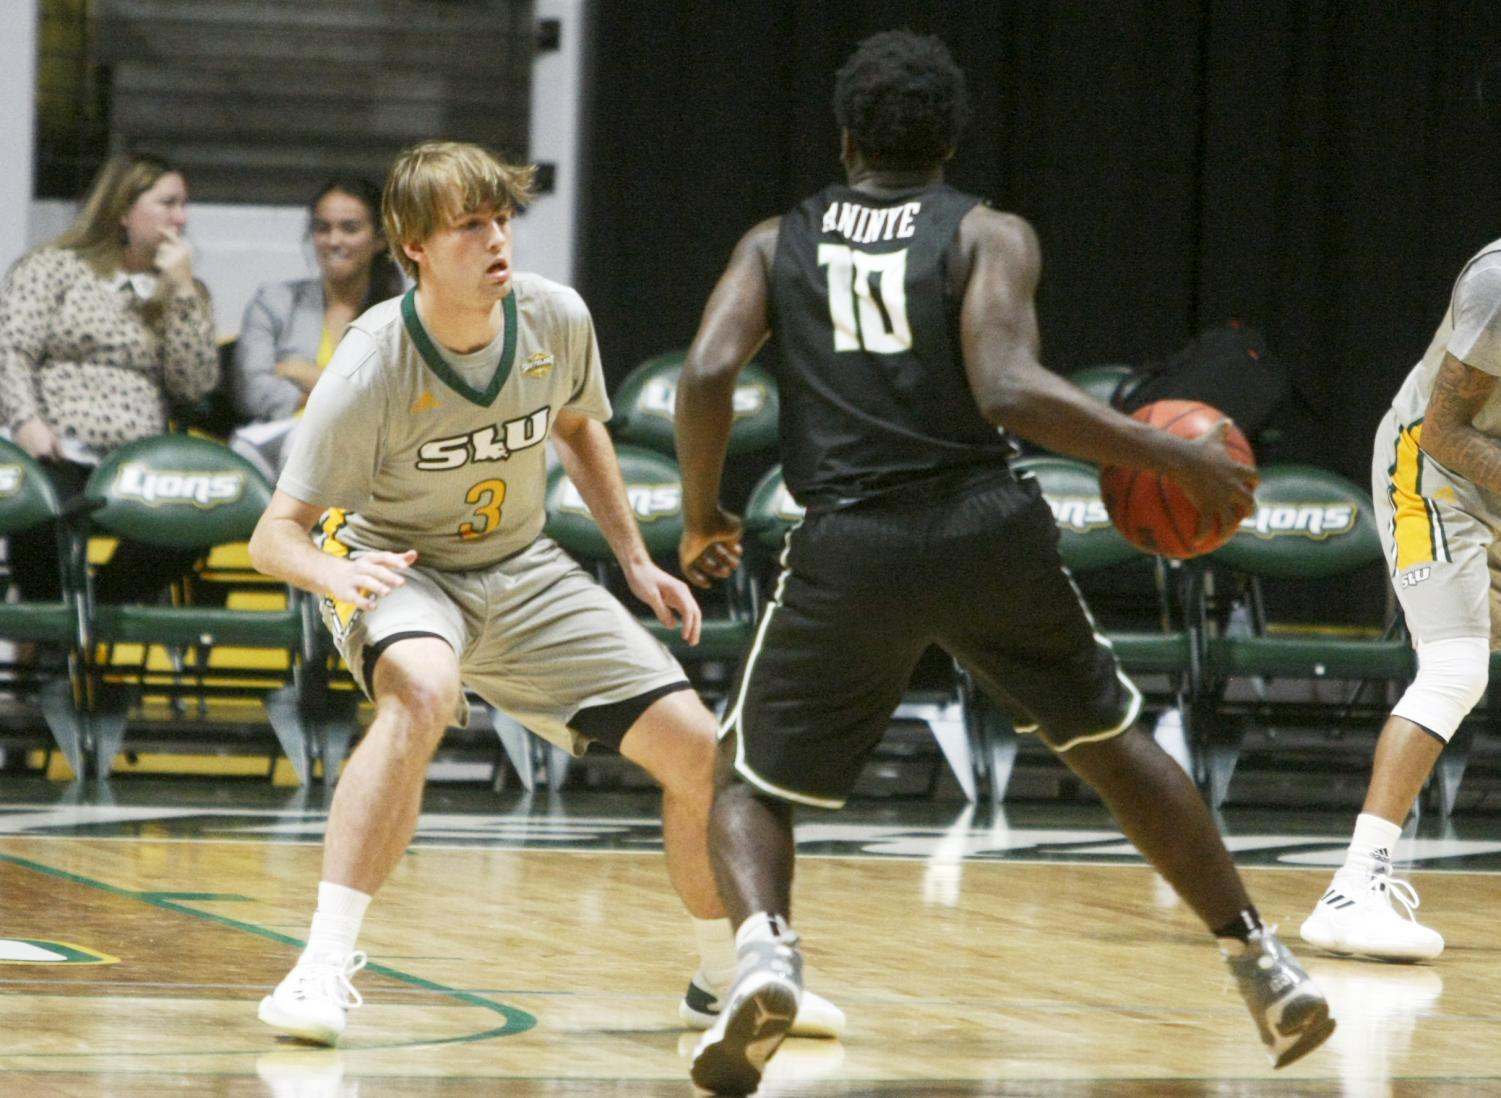 Freshman Guard Parker Edwards began his college basketball career in the fall of 2018 at the university. Since then, he has gained some recognition for the Game against Louisiana State University where he scored 25 points in 10 minutes.